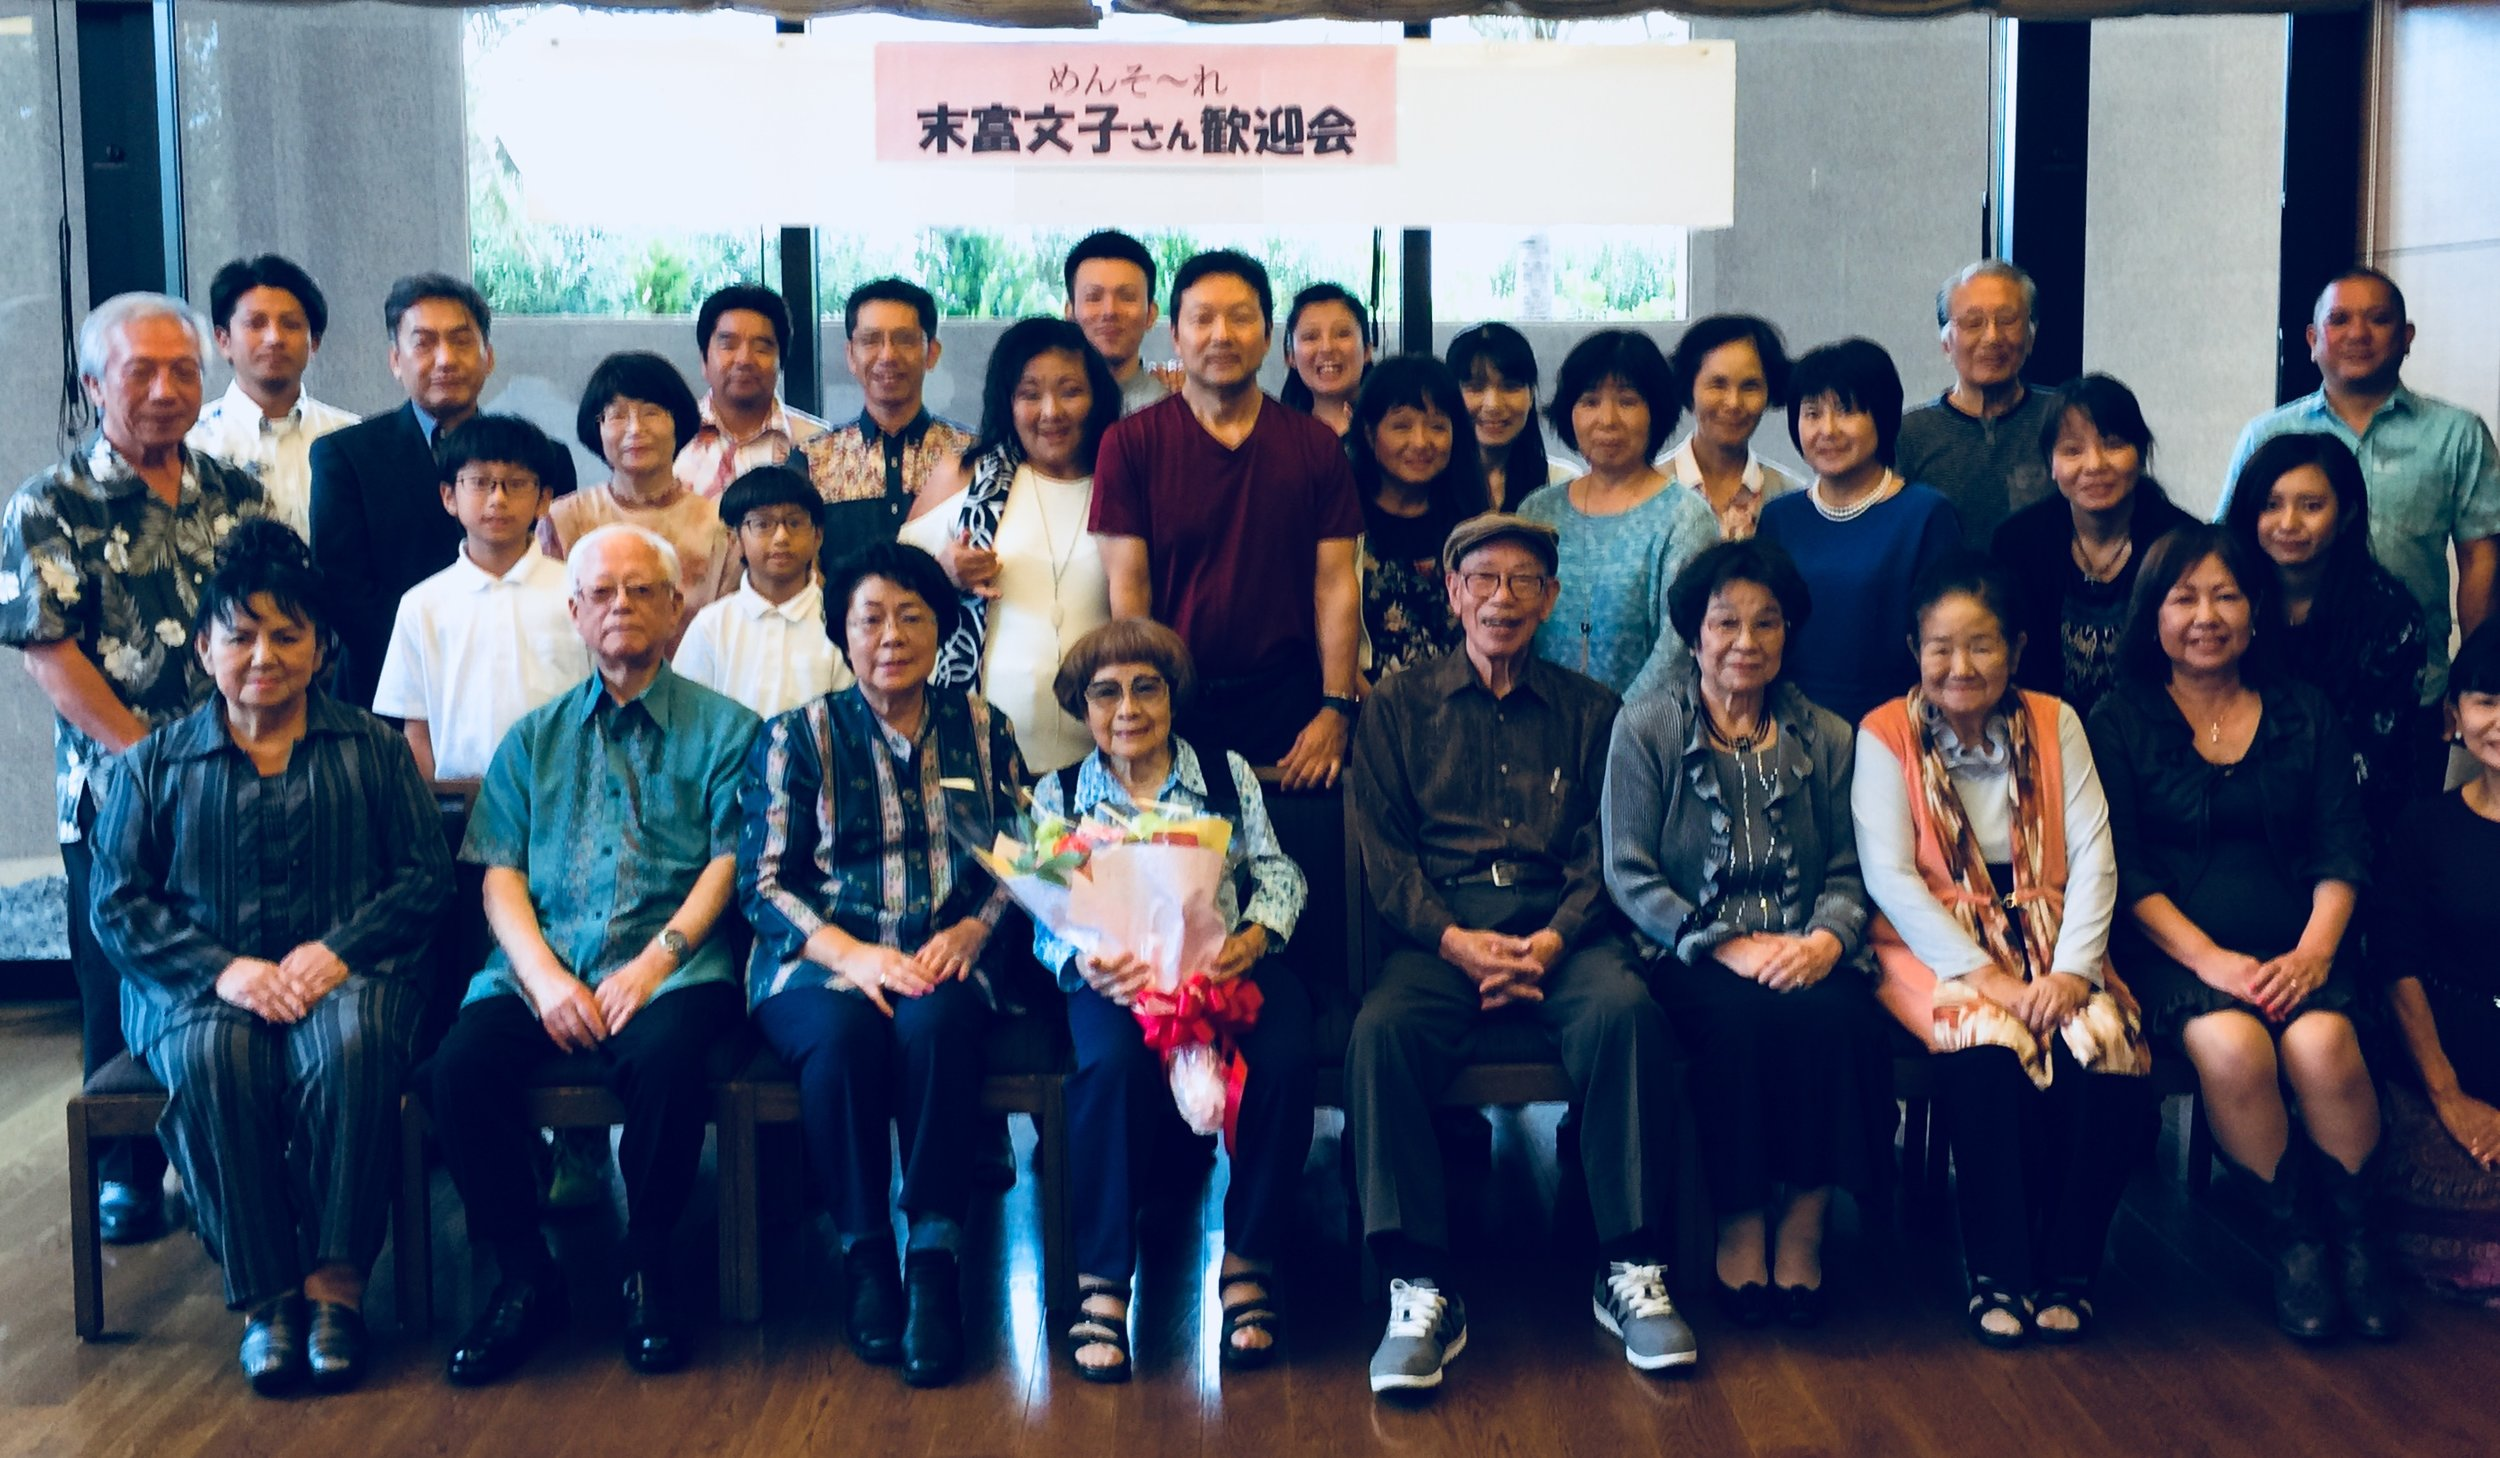 Janice Suetomi (seated fourth from the left, holding bouquet) was the guest of honor at a family reunion in Okinawa in November 2017.